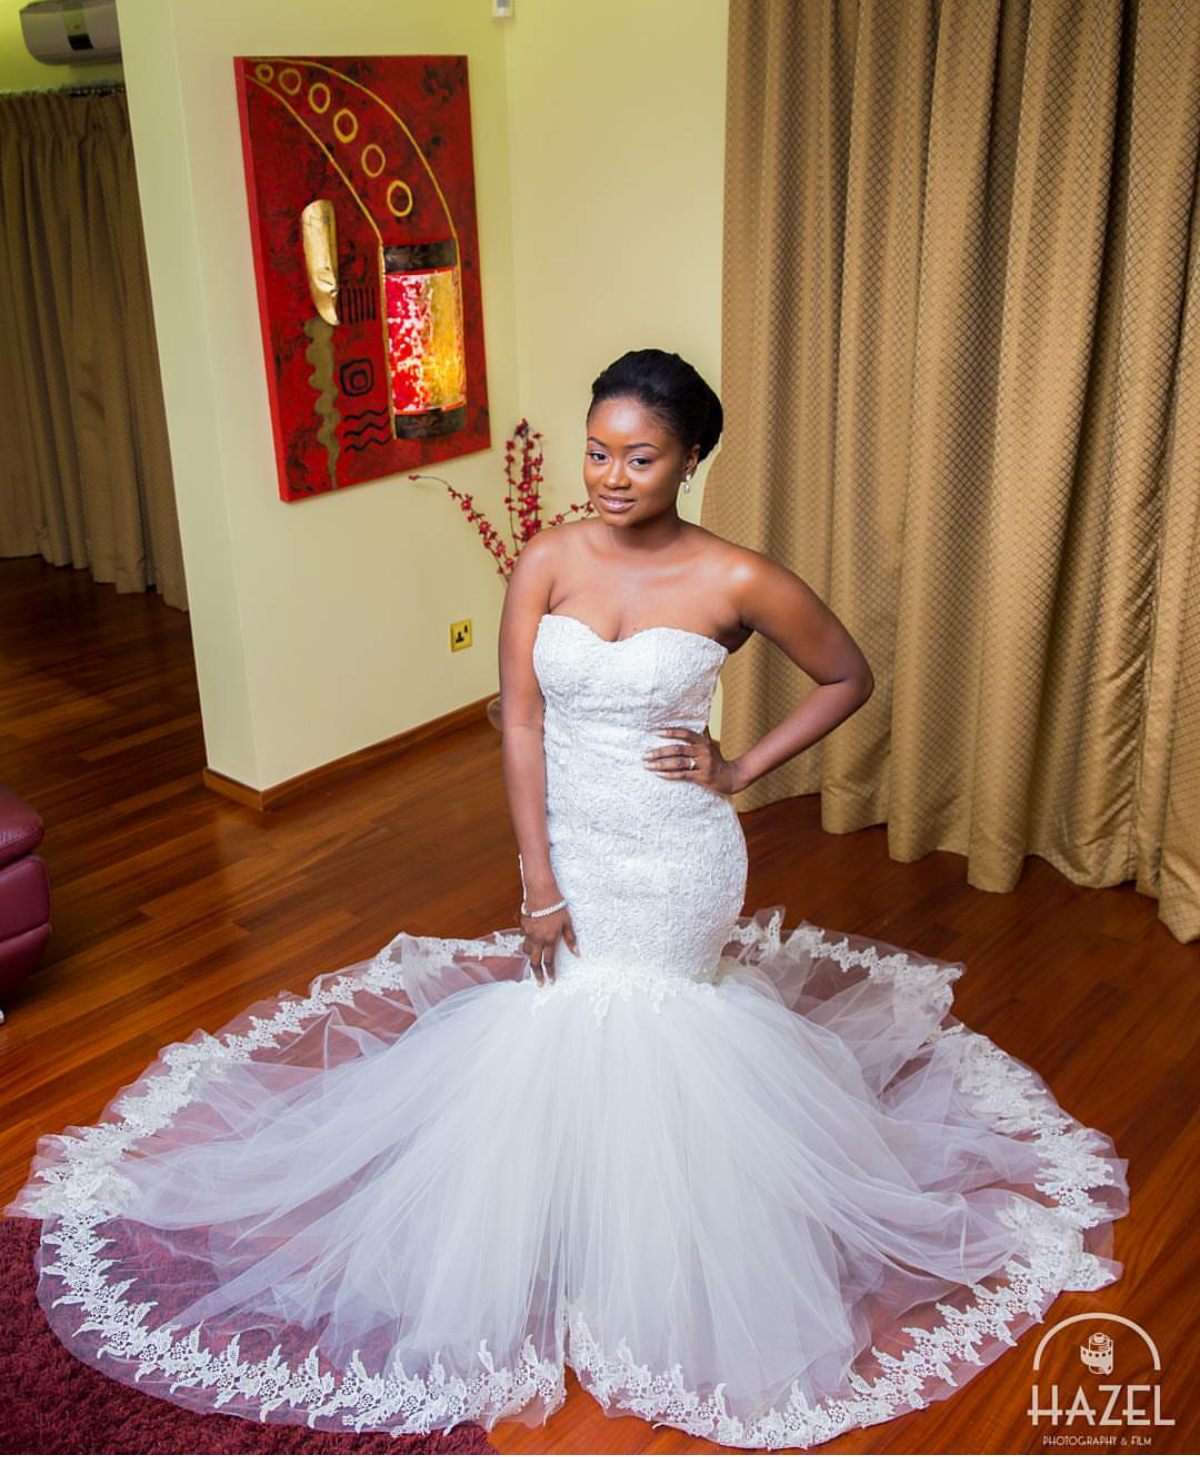 2016 TRENDS IN GH WEDDINGS WE LOVE – I do Ghana